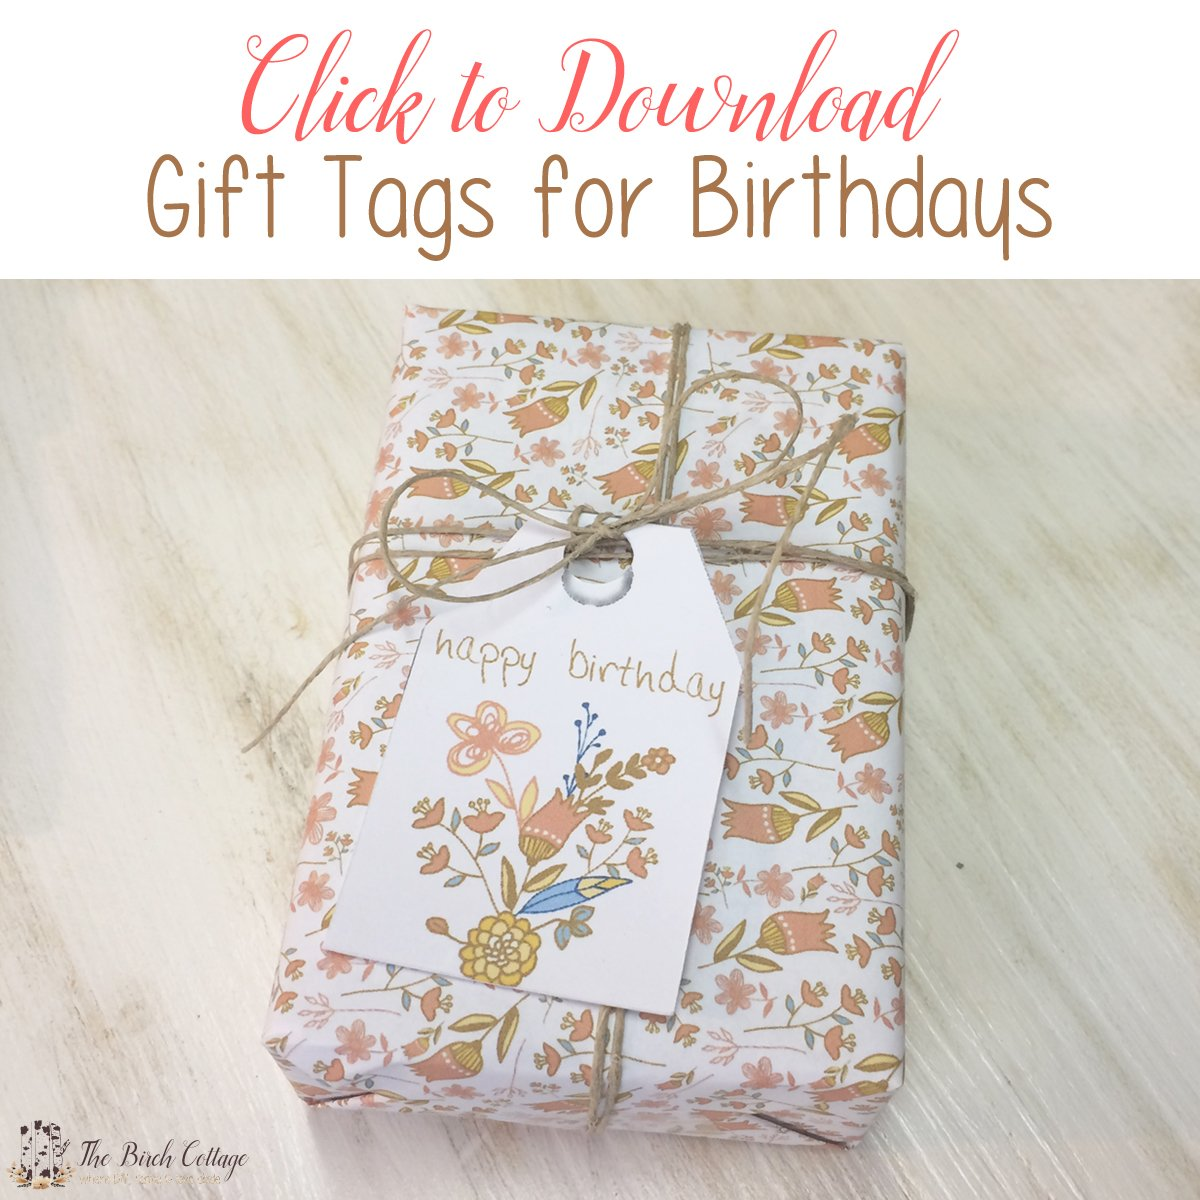 graphic relating to Large Gift Tags Printable called Totally free Printable Birthday Present Tags Accurately for On your own! - The Birch